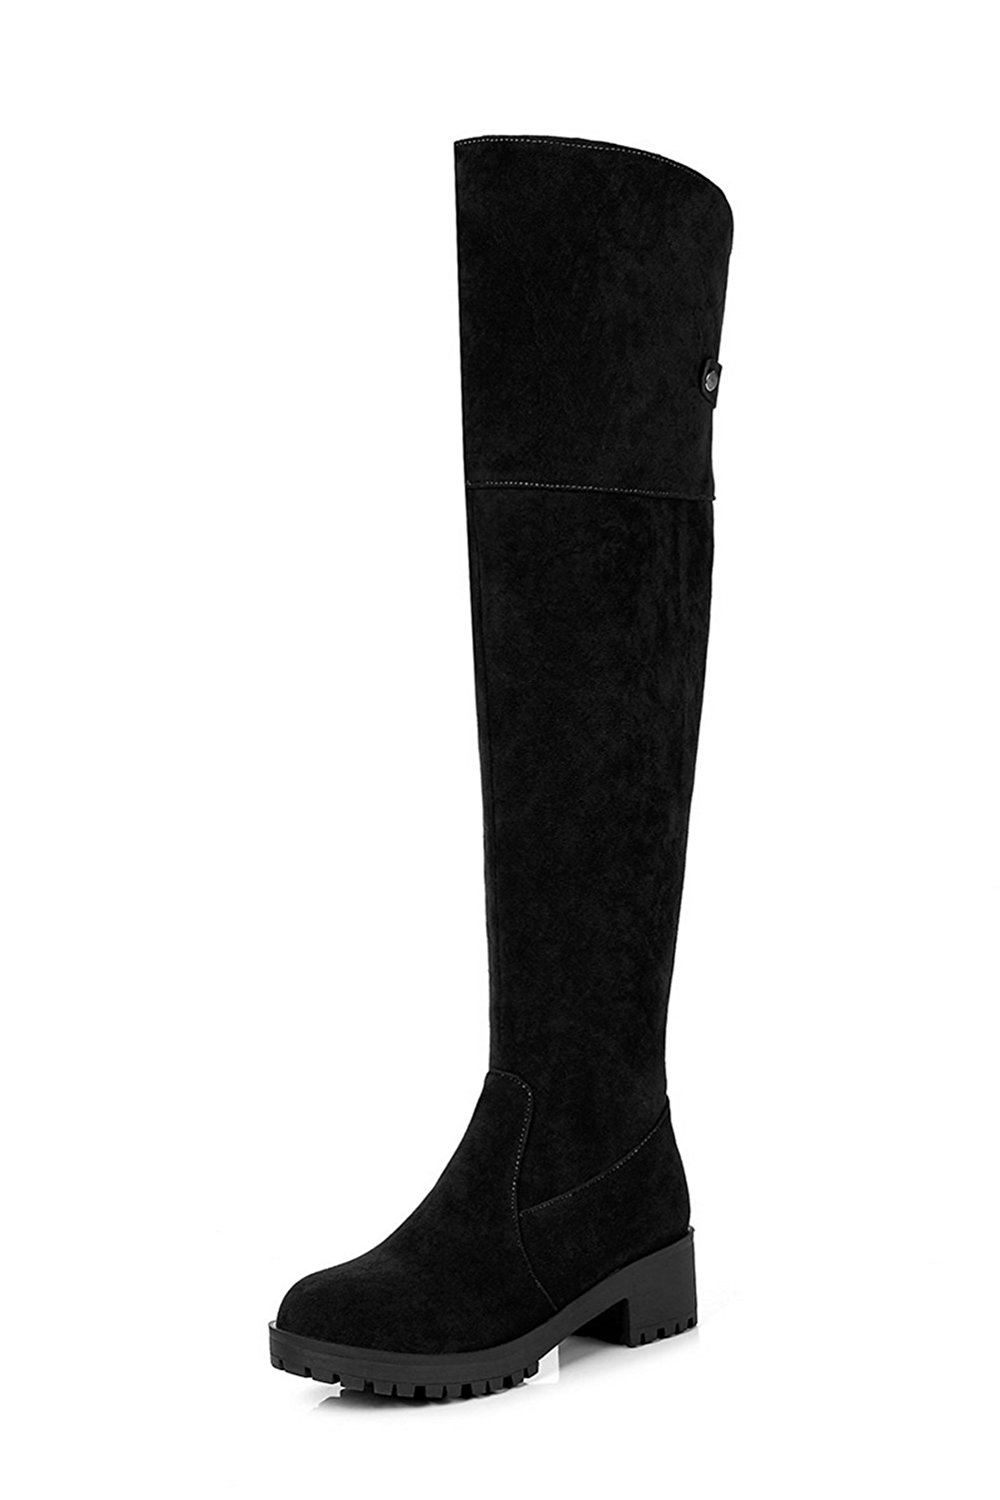 89157b5a2 Get Quotations · AN Womens Boots High-Top Kitten-Heel Warm Lining Road  Closed-Toe Urethane